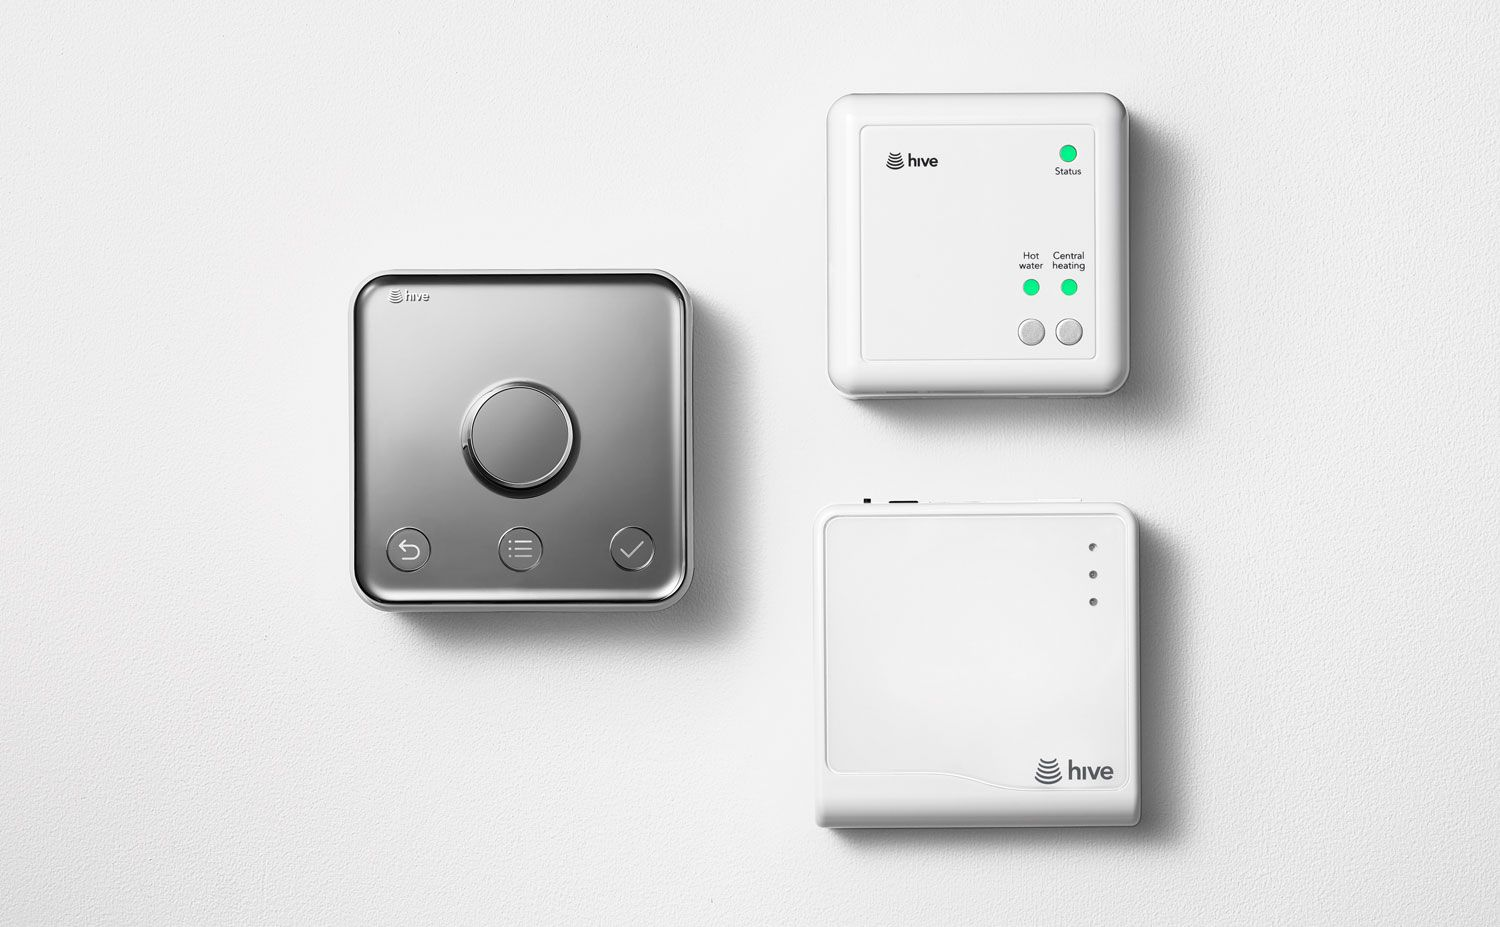 Hive active heating 2, receiver and hub to connect your